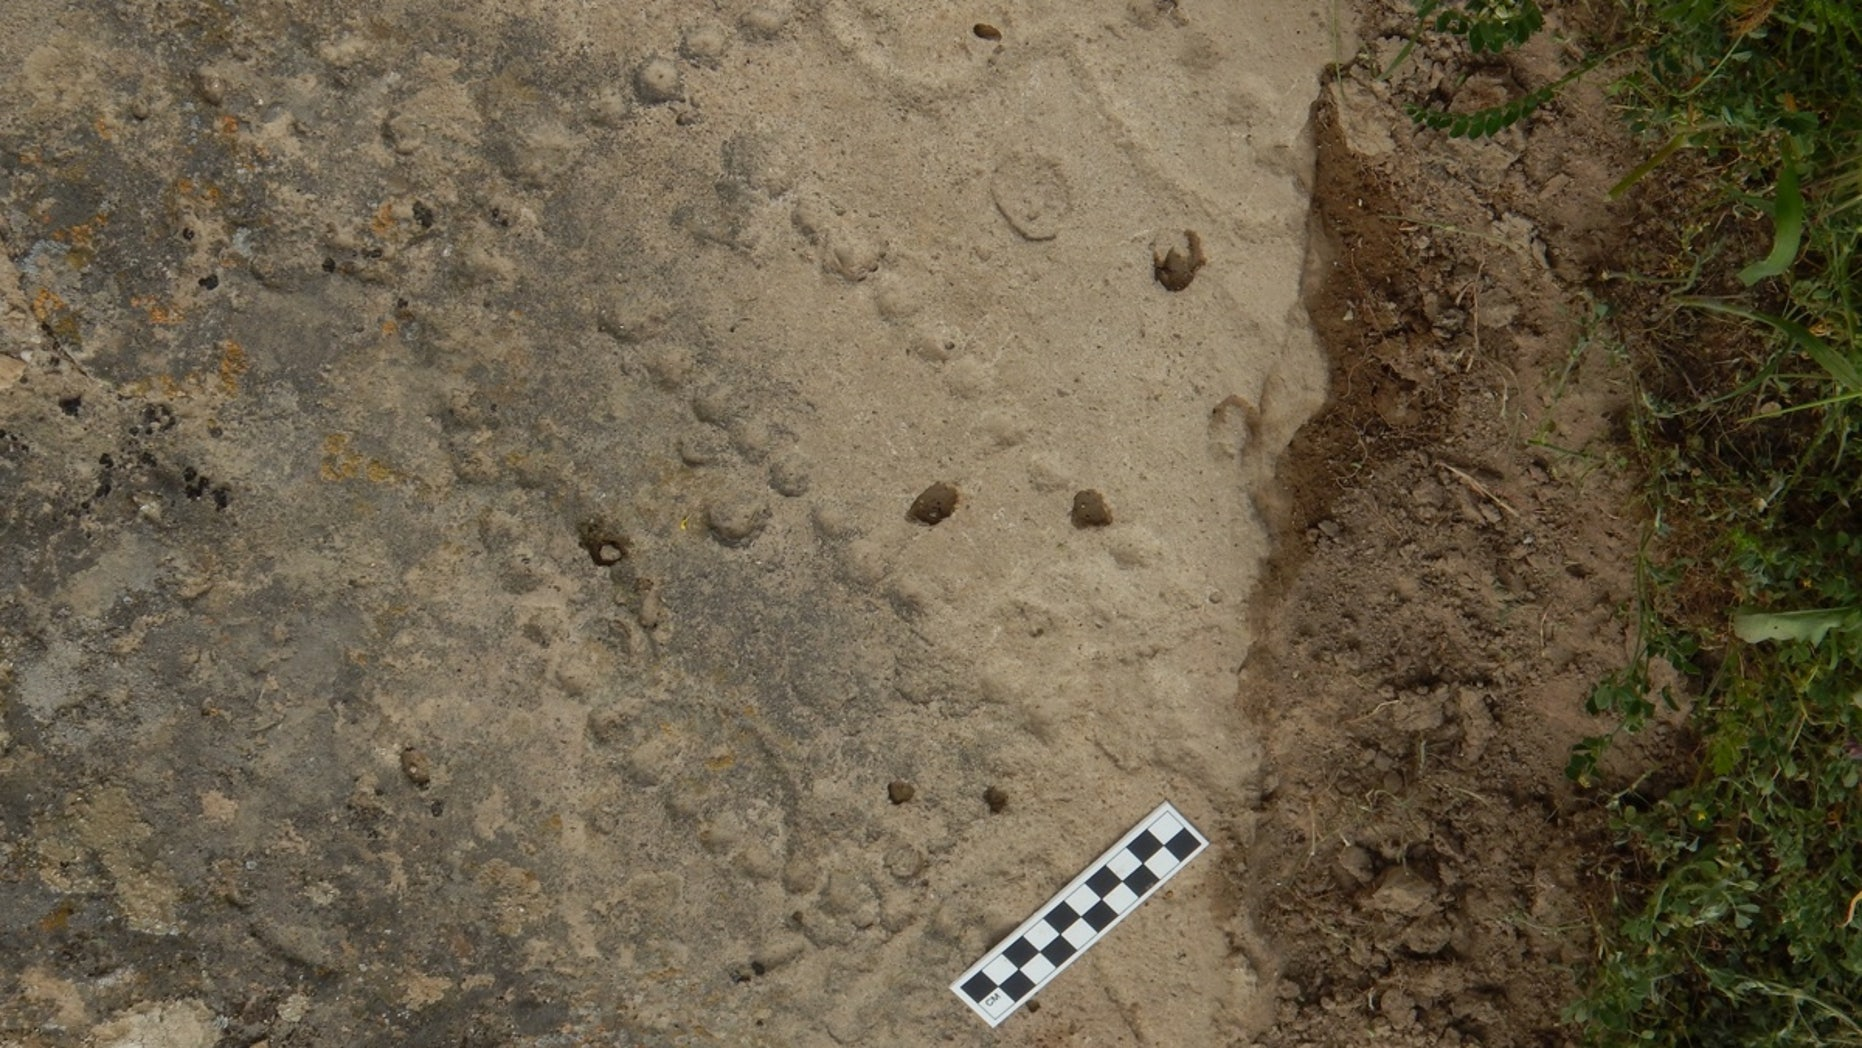 A distinctive pattern of holes scored into the rock of an ancient shelter in Azerbaijan are the remains of a board for one of the world's oldest games.